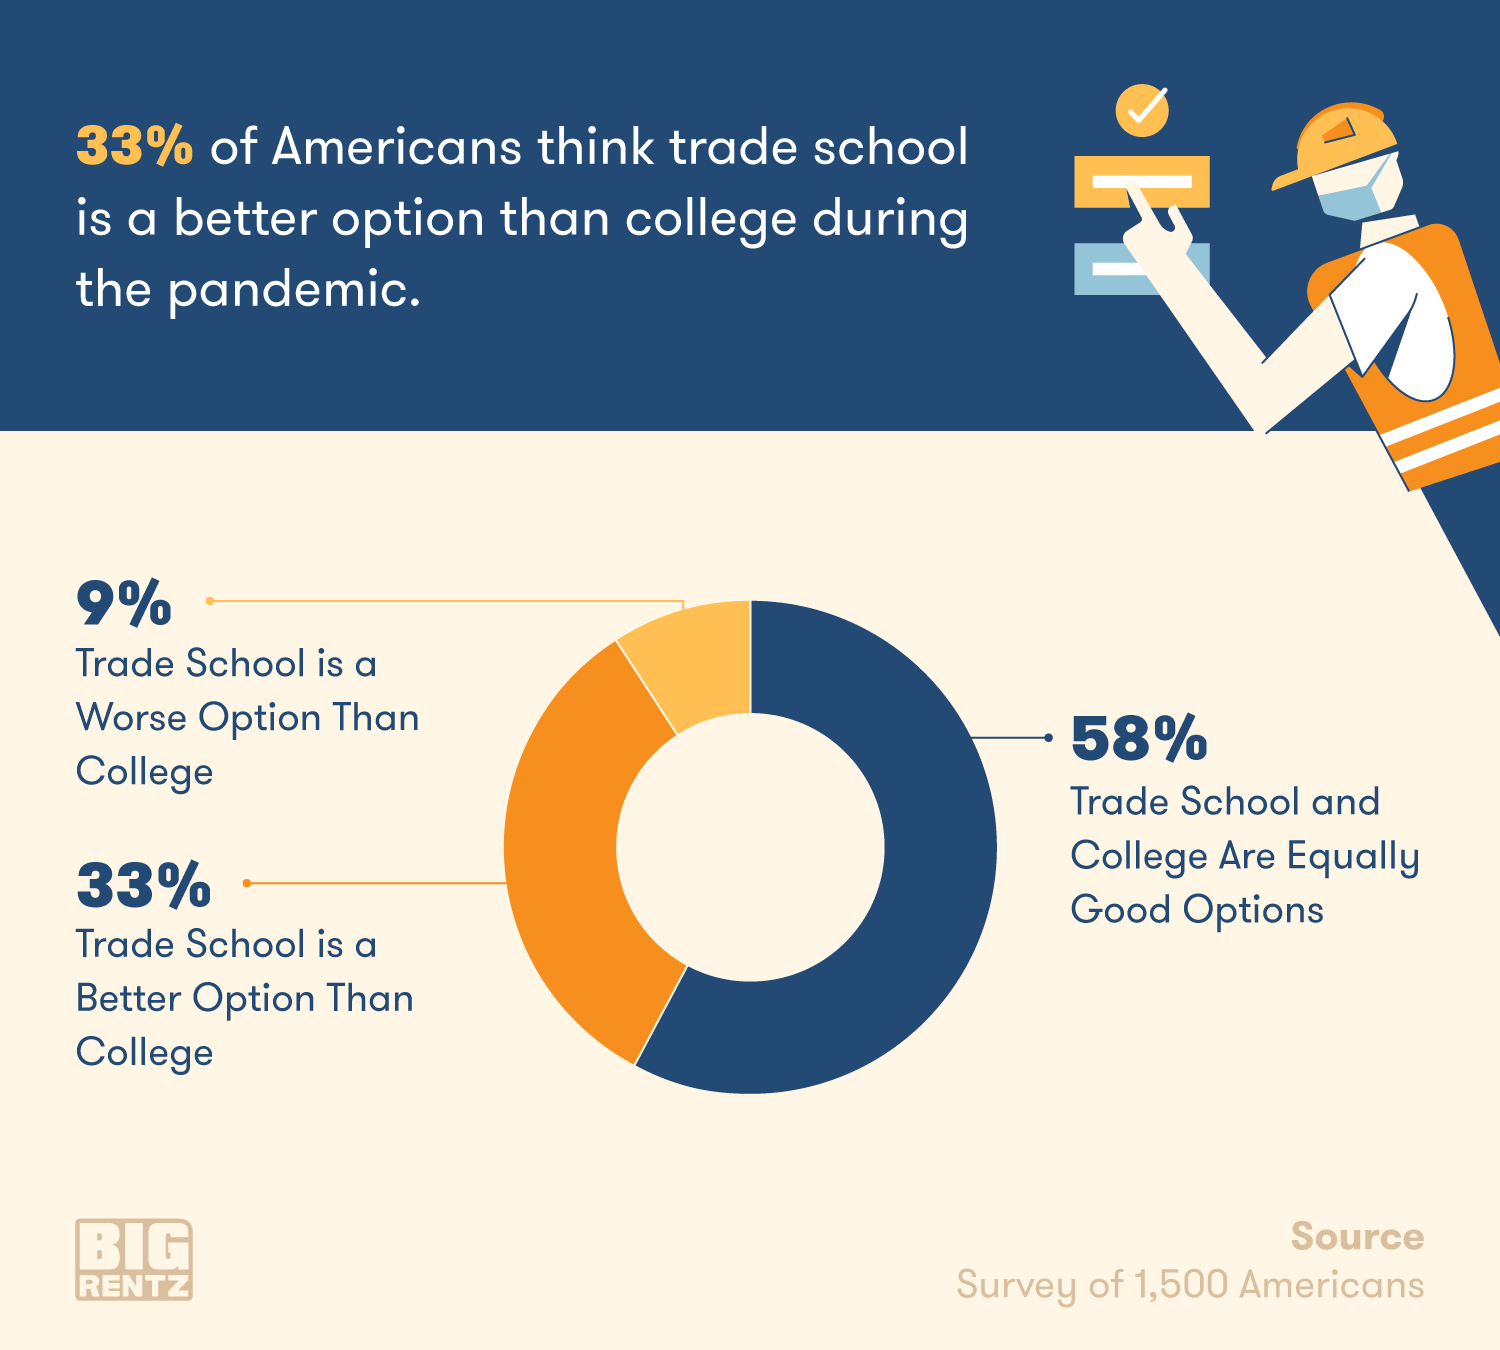 One-third of people view trade school as a better option than college during the pandemic.